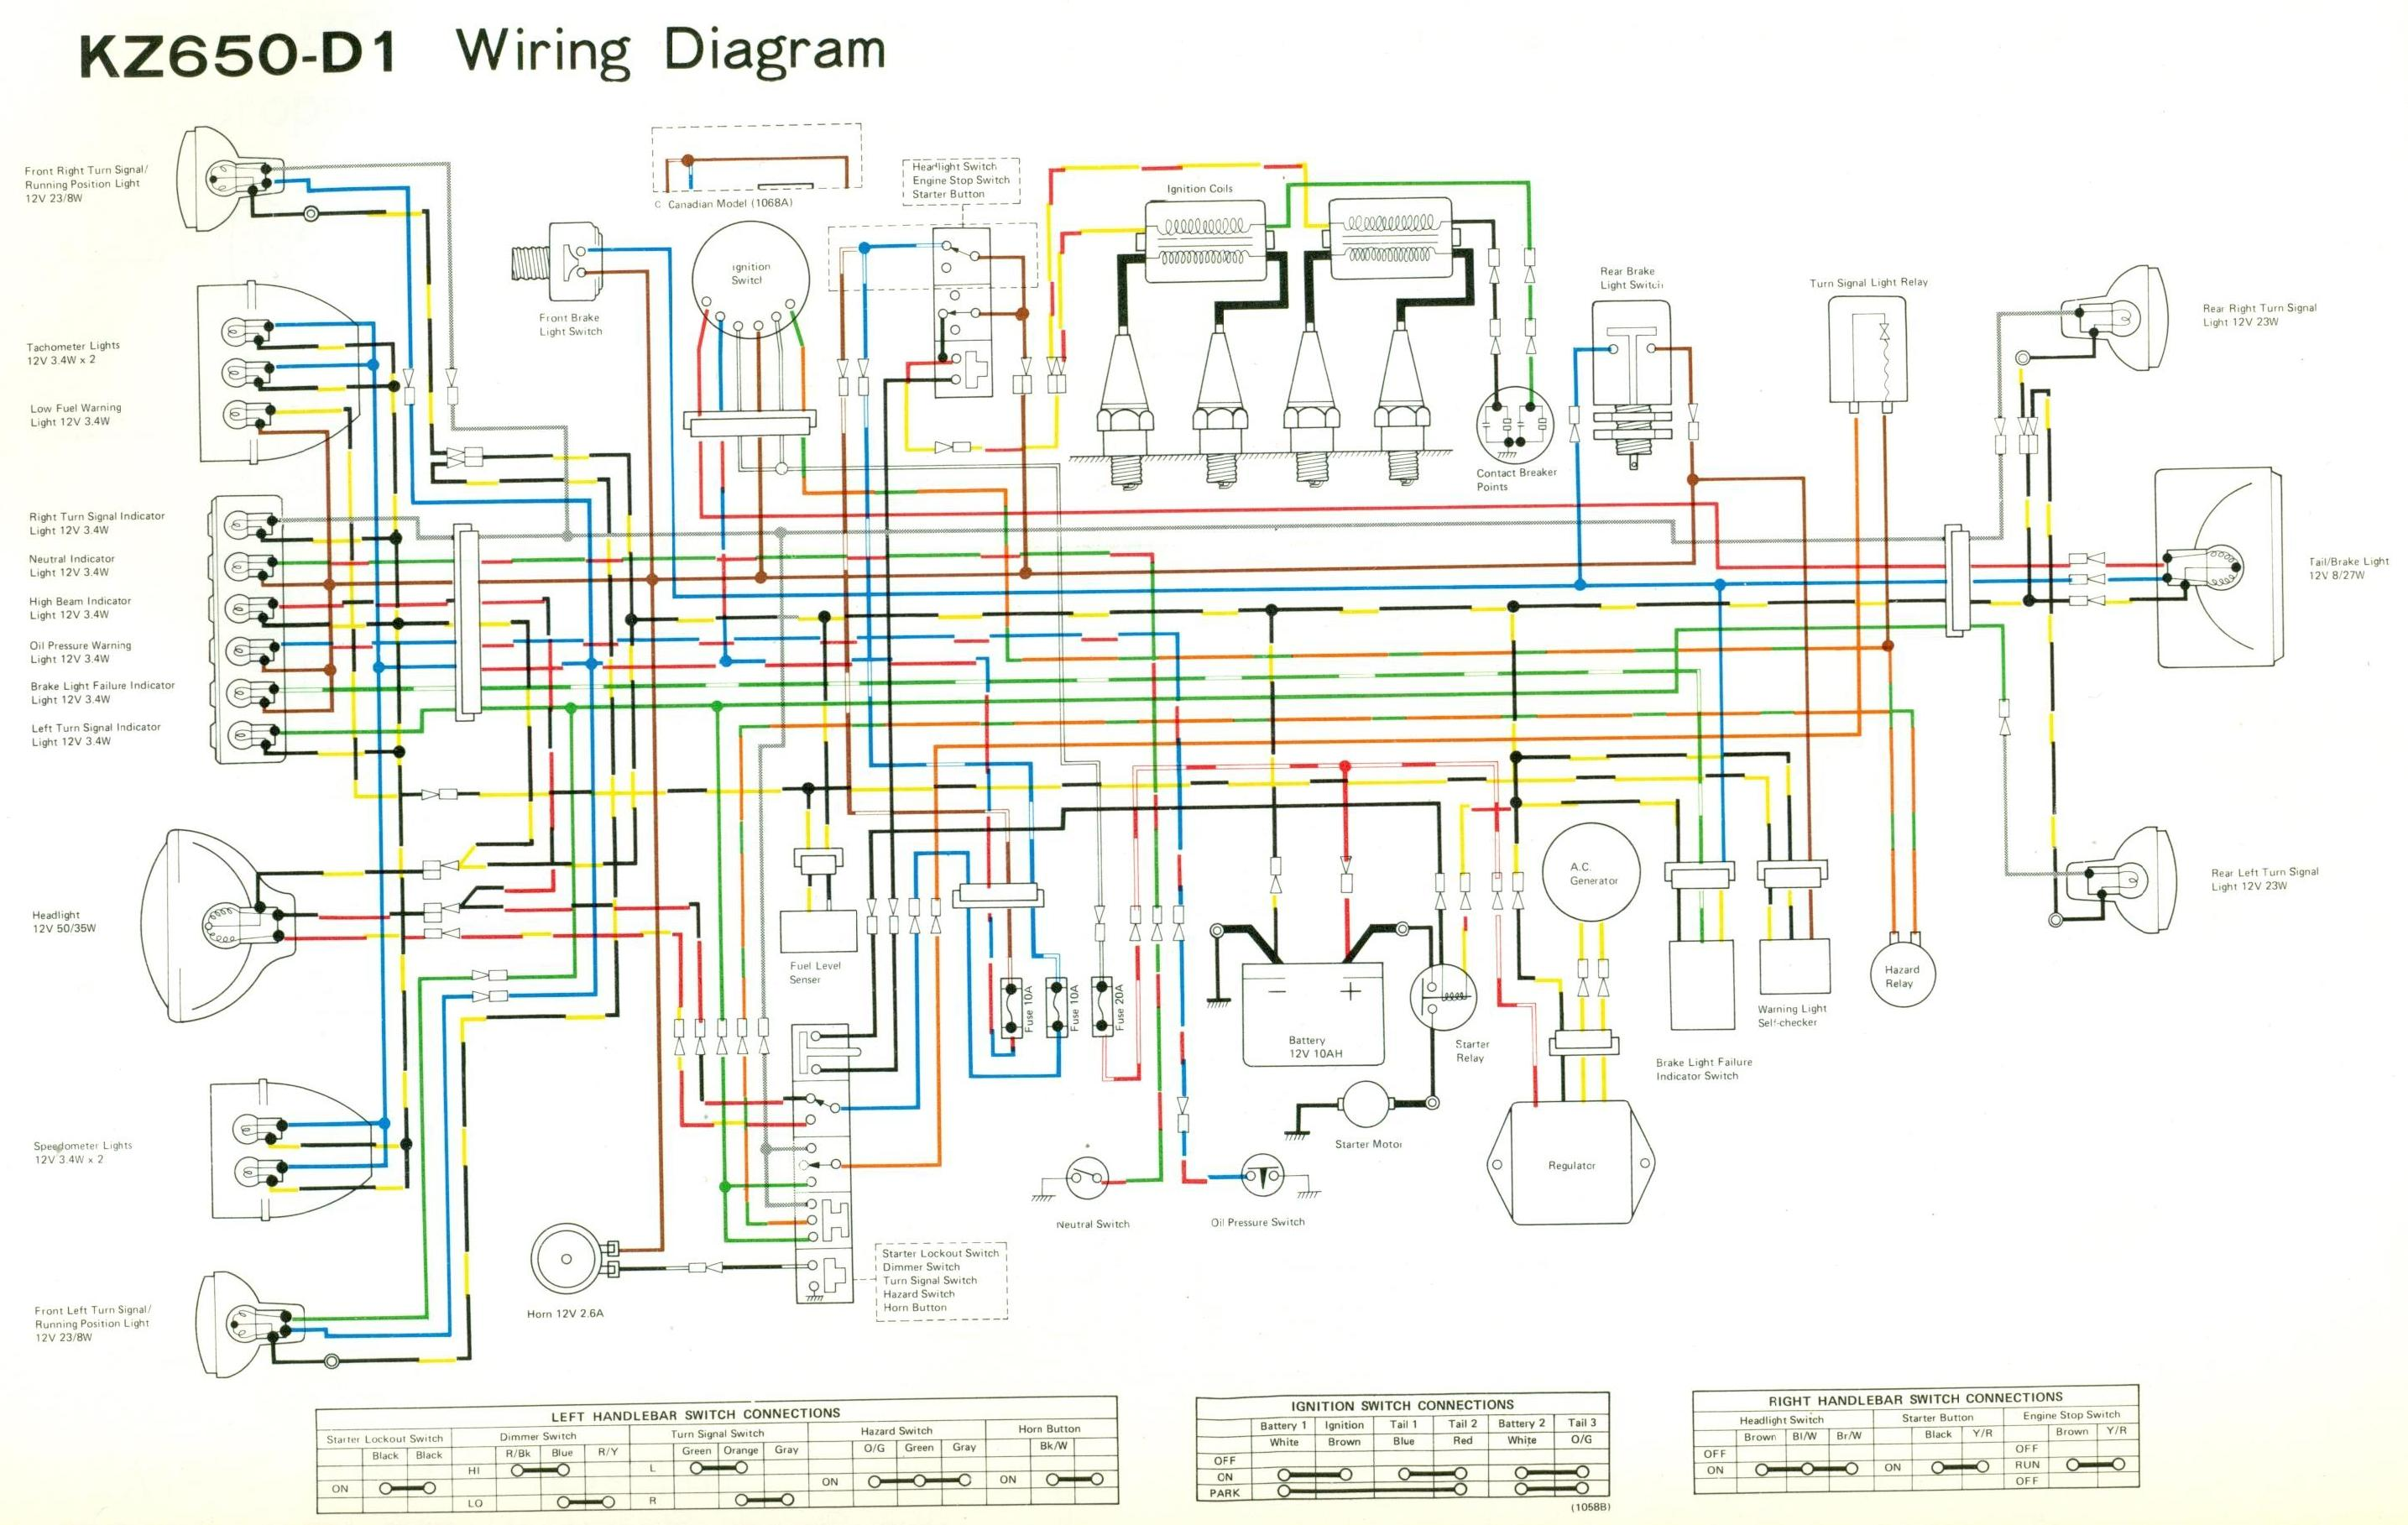 KZ650 D wiring diagrams 1978 kz650 wiring harness at crackthecode.co